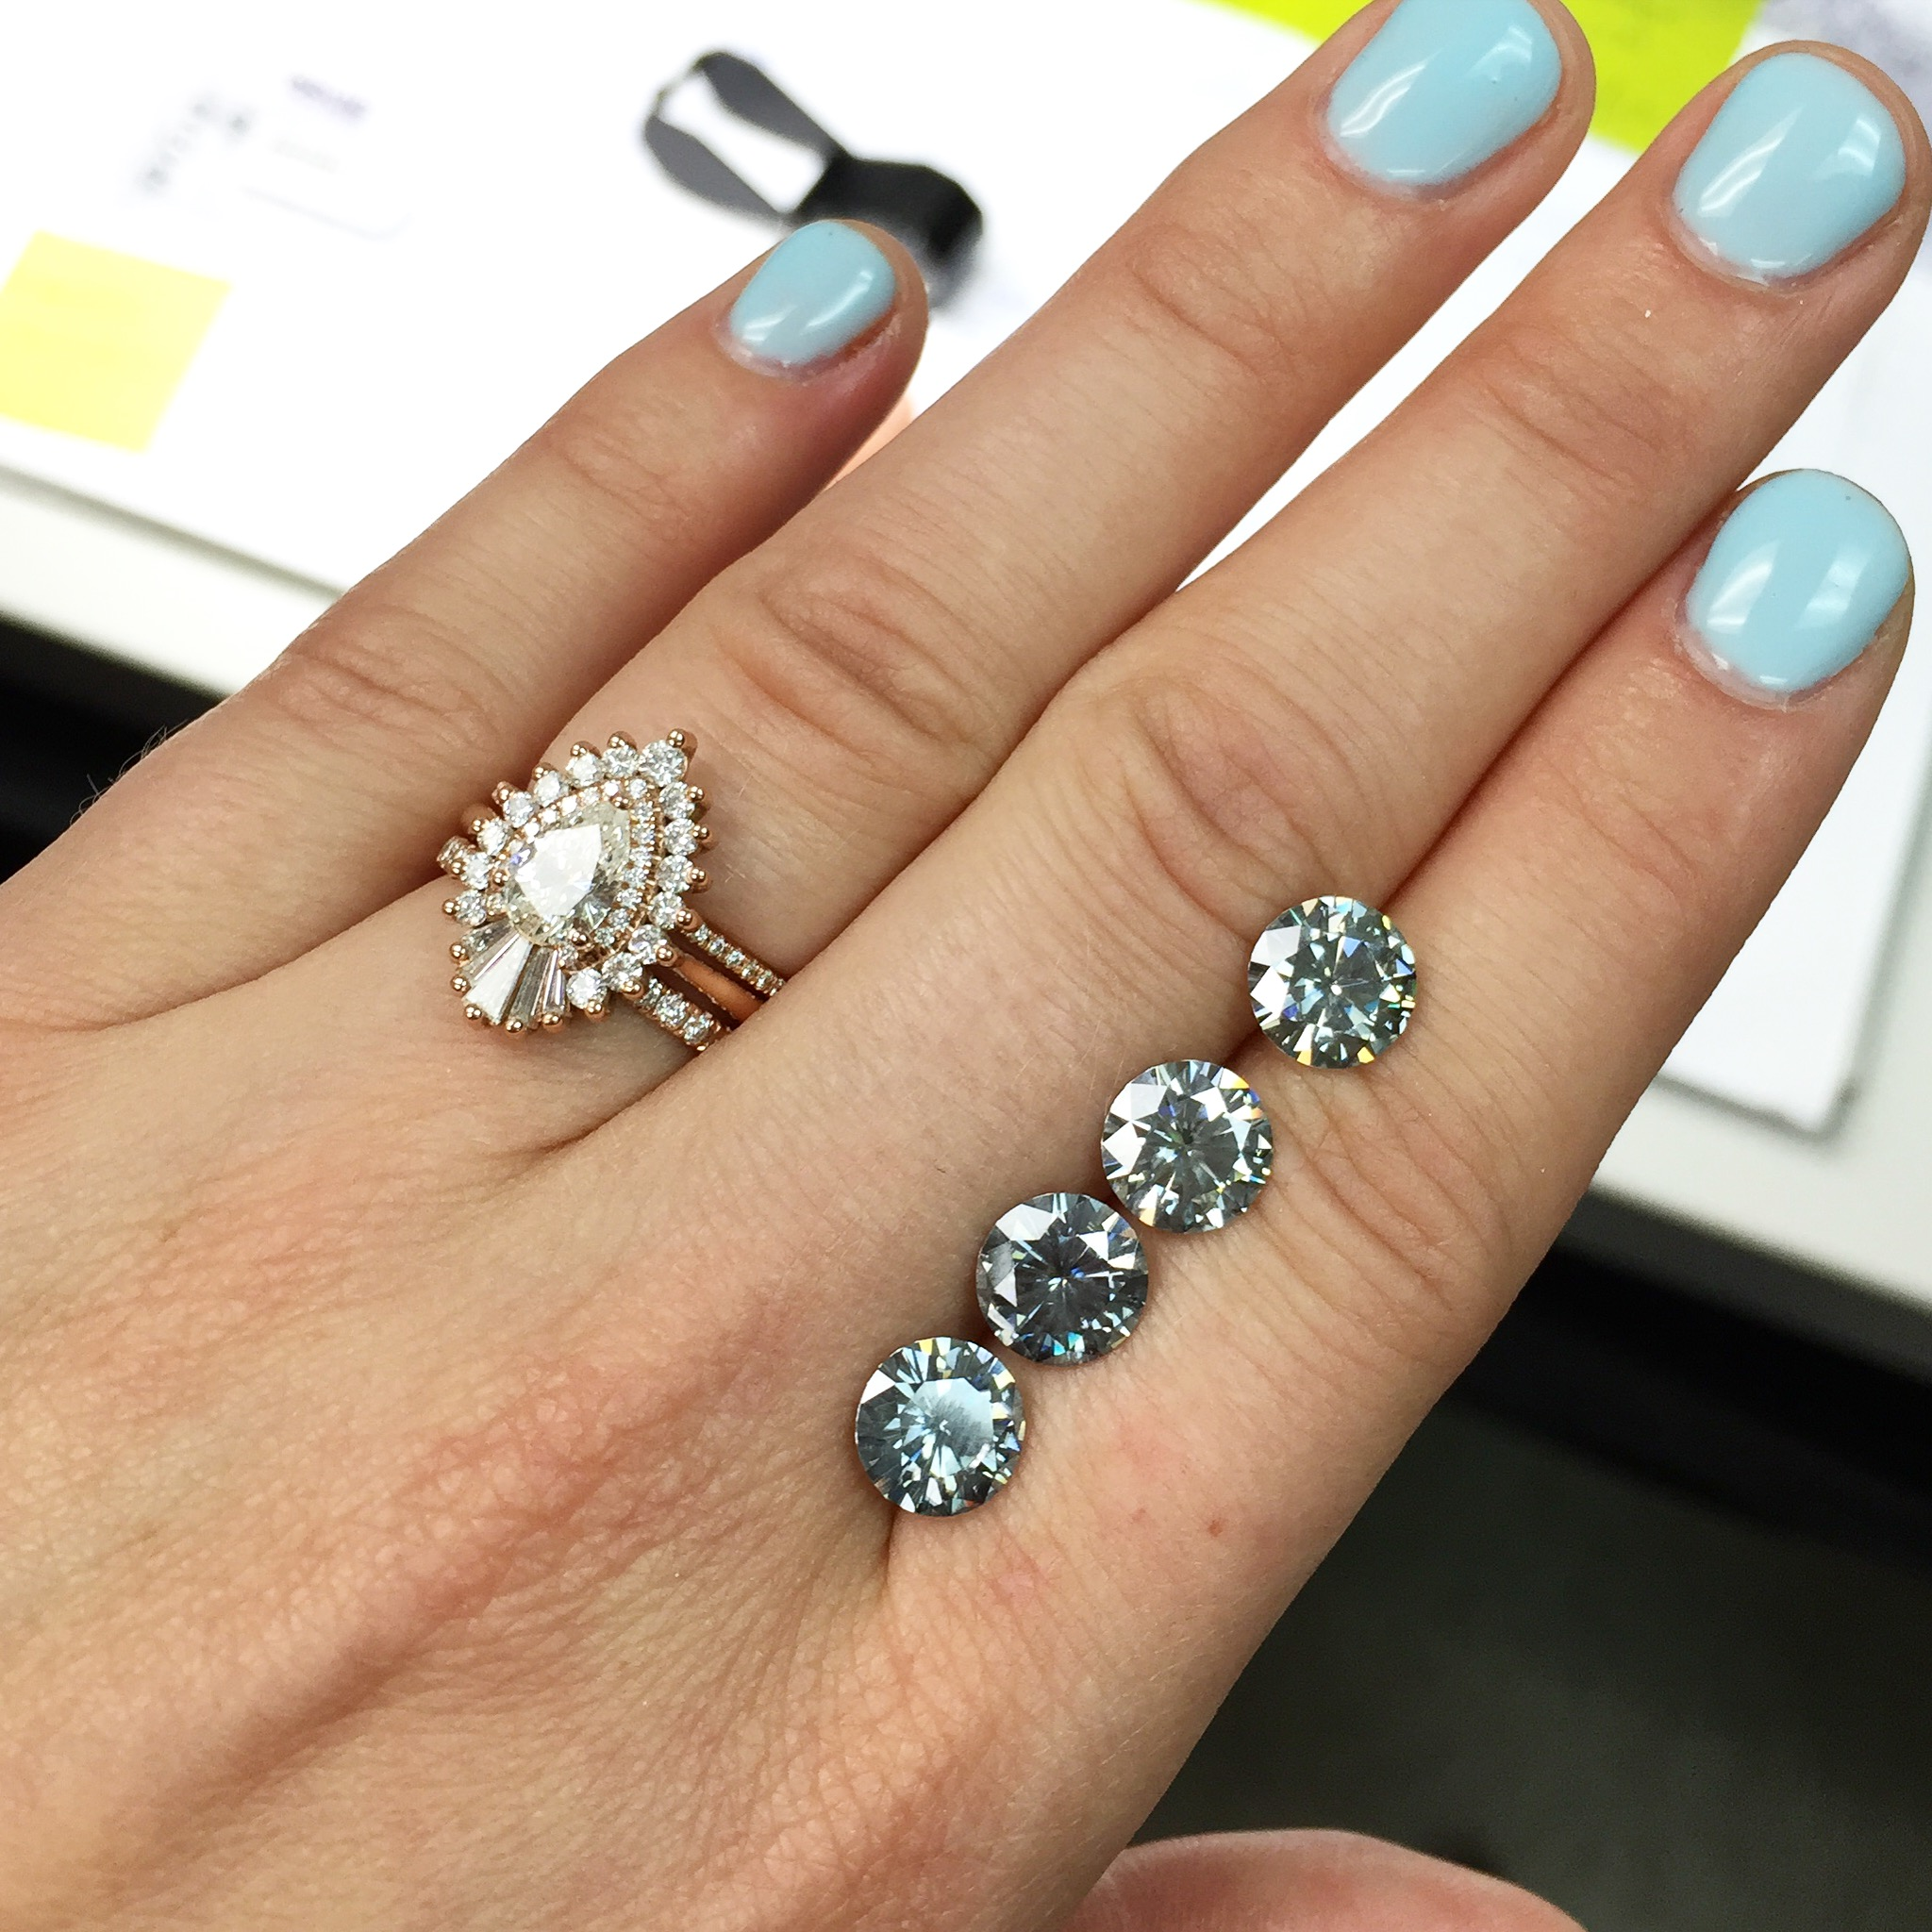 The stunning blue gray 8mm (2 carat size) moissanite that I selected for my dream ring